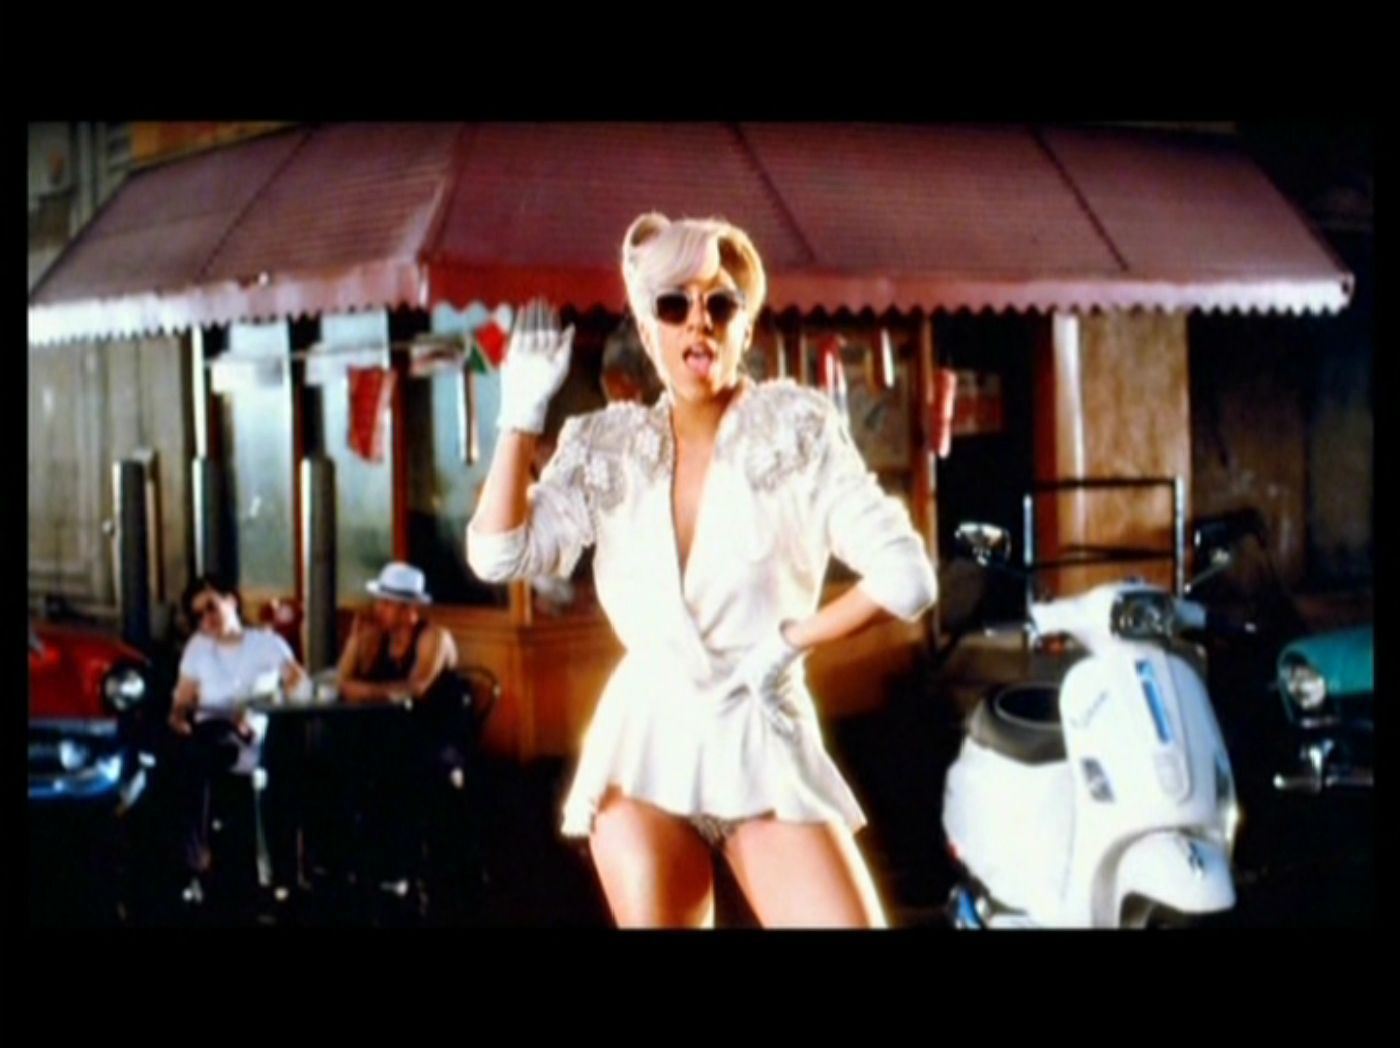 lady gaga - Eh Eh (There's nothing else I can say) - muziek video